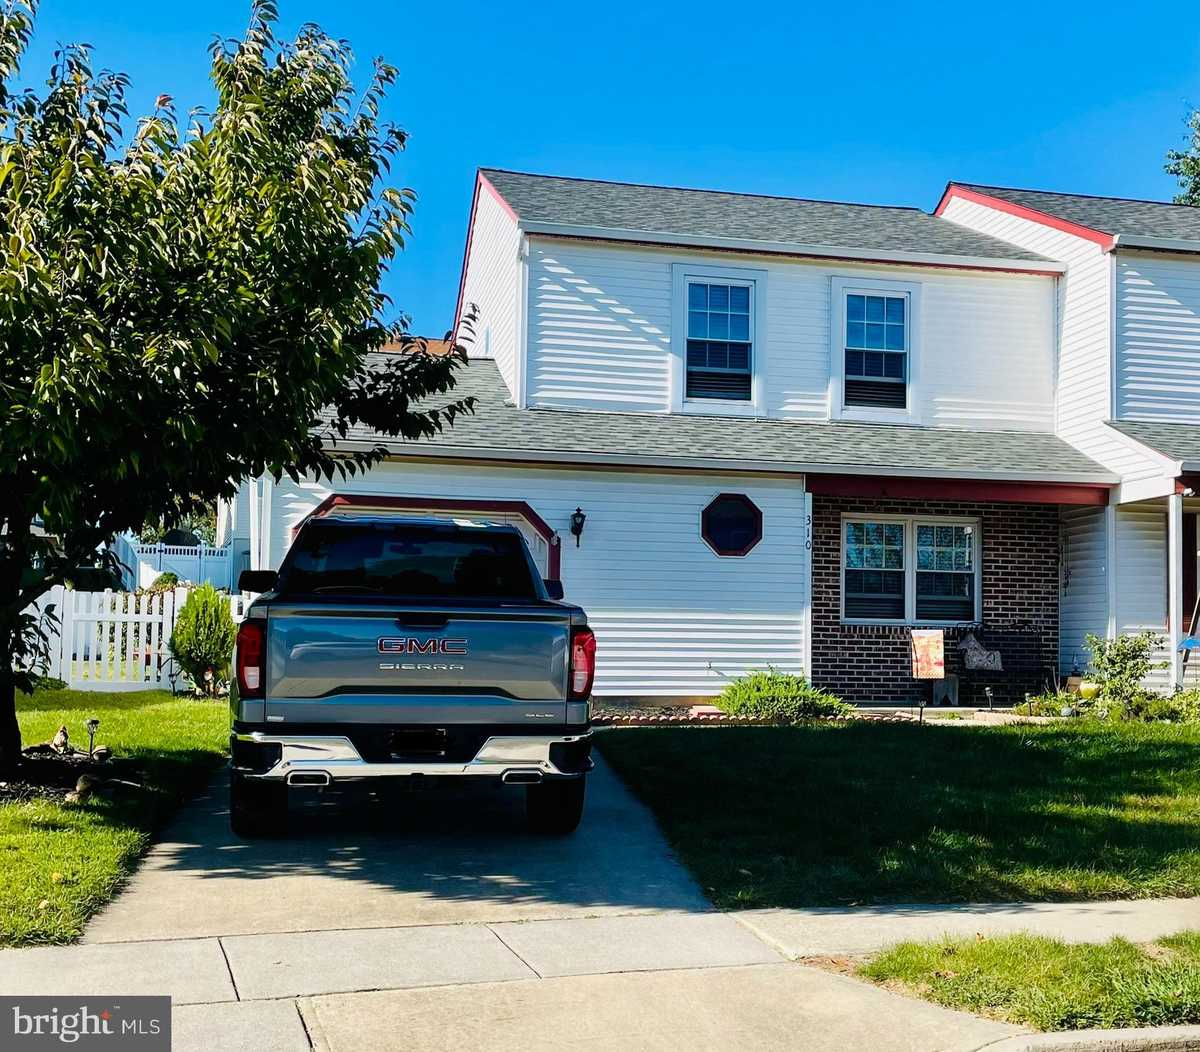 $220,000 - 3Br/2Ba -  for Sale in High Pointe, Mullica Hill